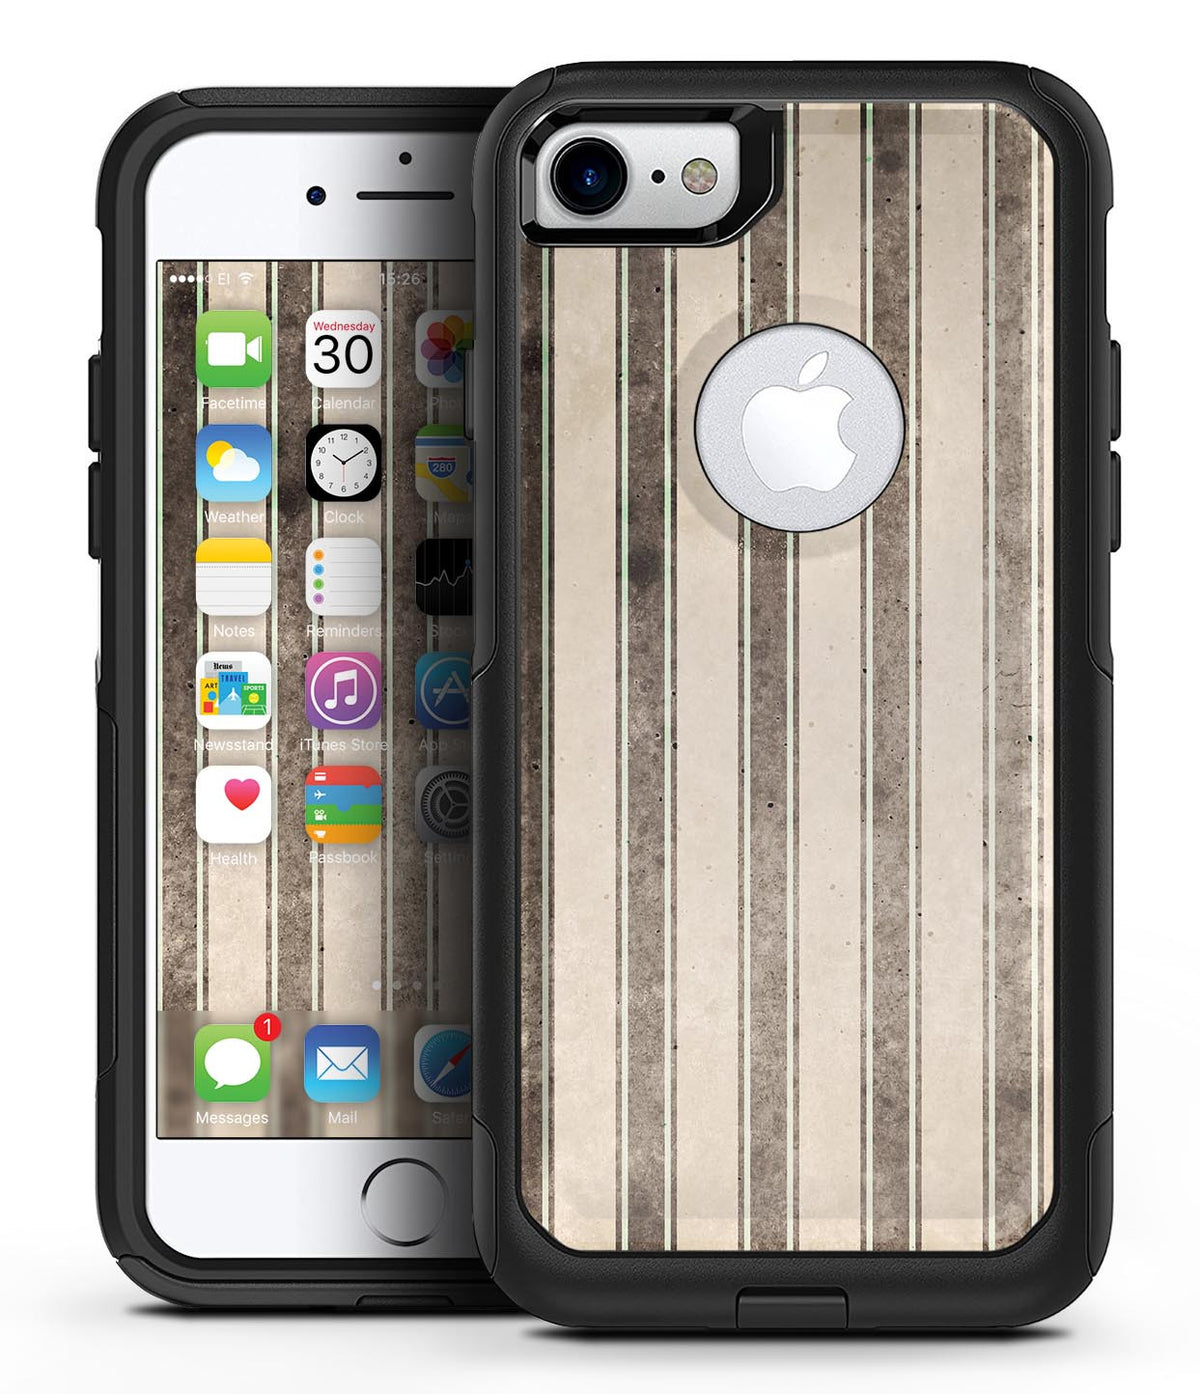 Grungy Motel Wallpaper - iPhone 7 or 7 Plus Commuter Case Skin Kit